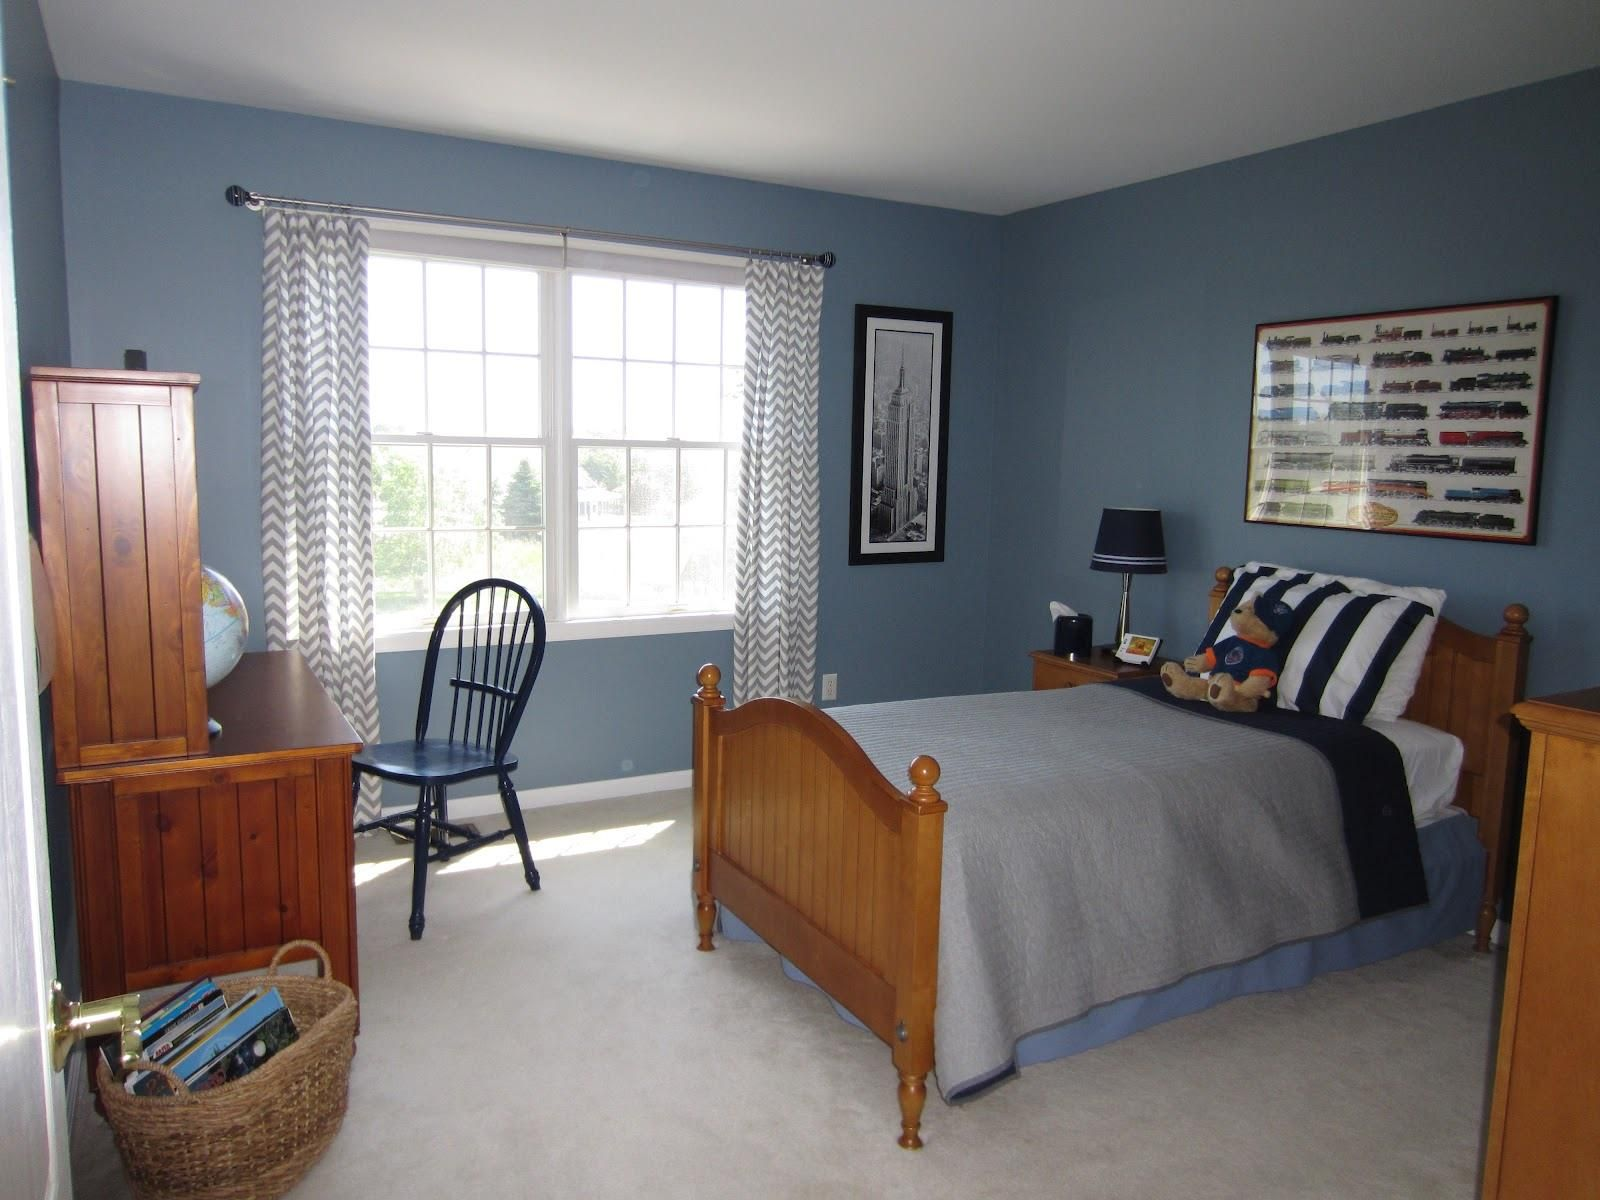 Bright And Crazy Room Color Ideas Make You Feel Good Boys room paint color